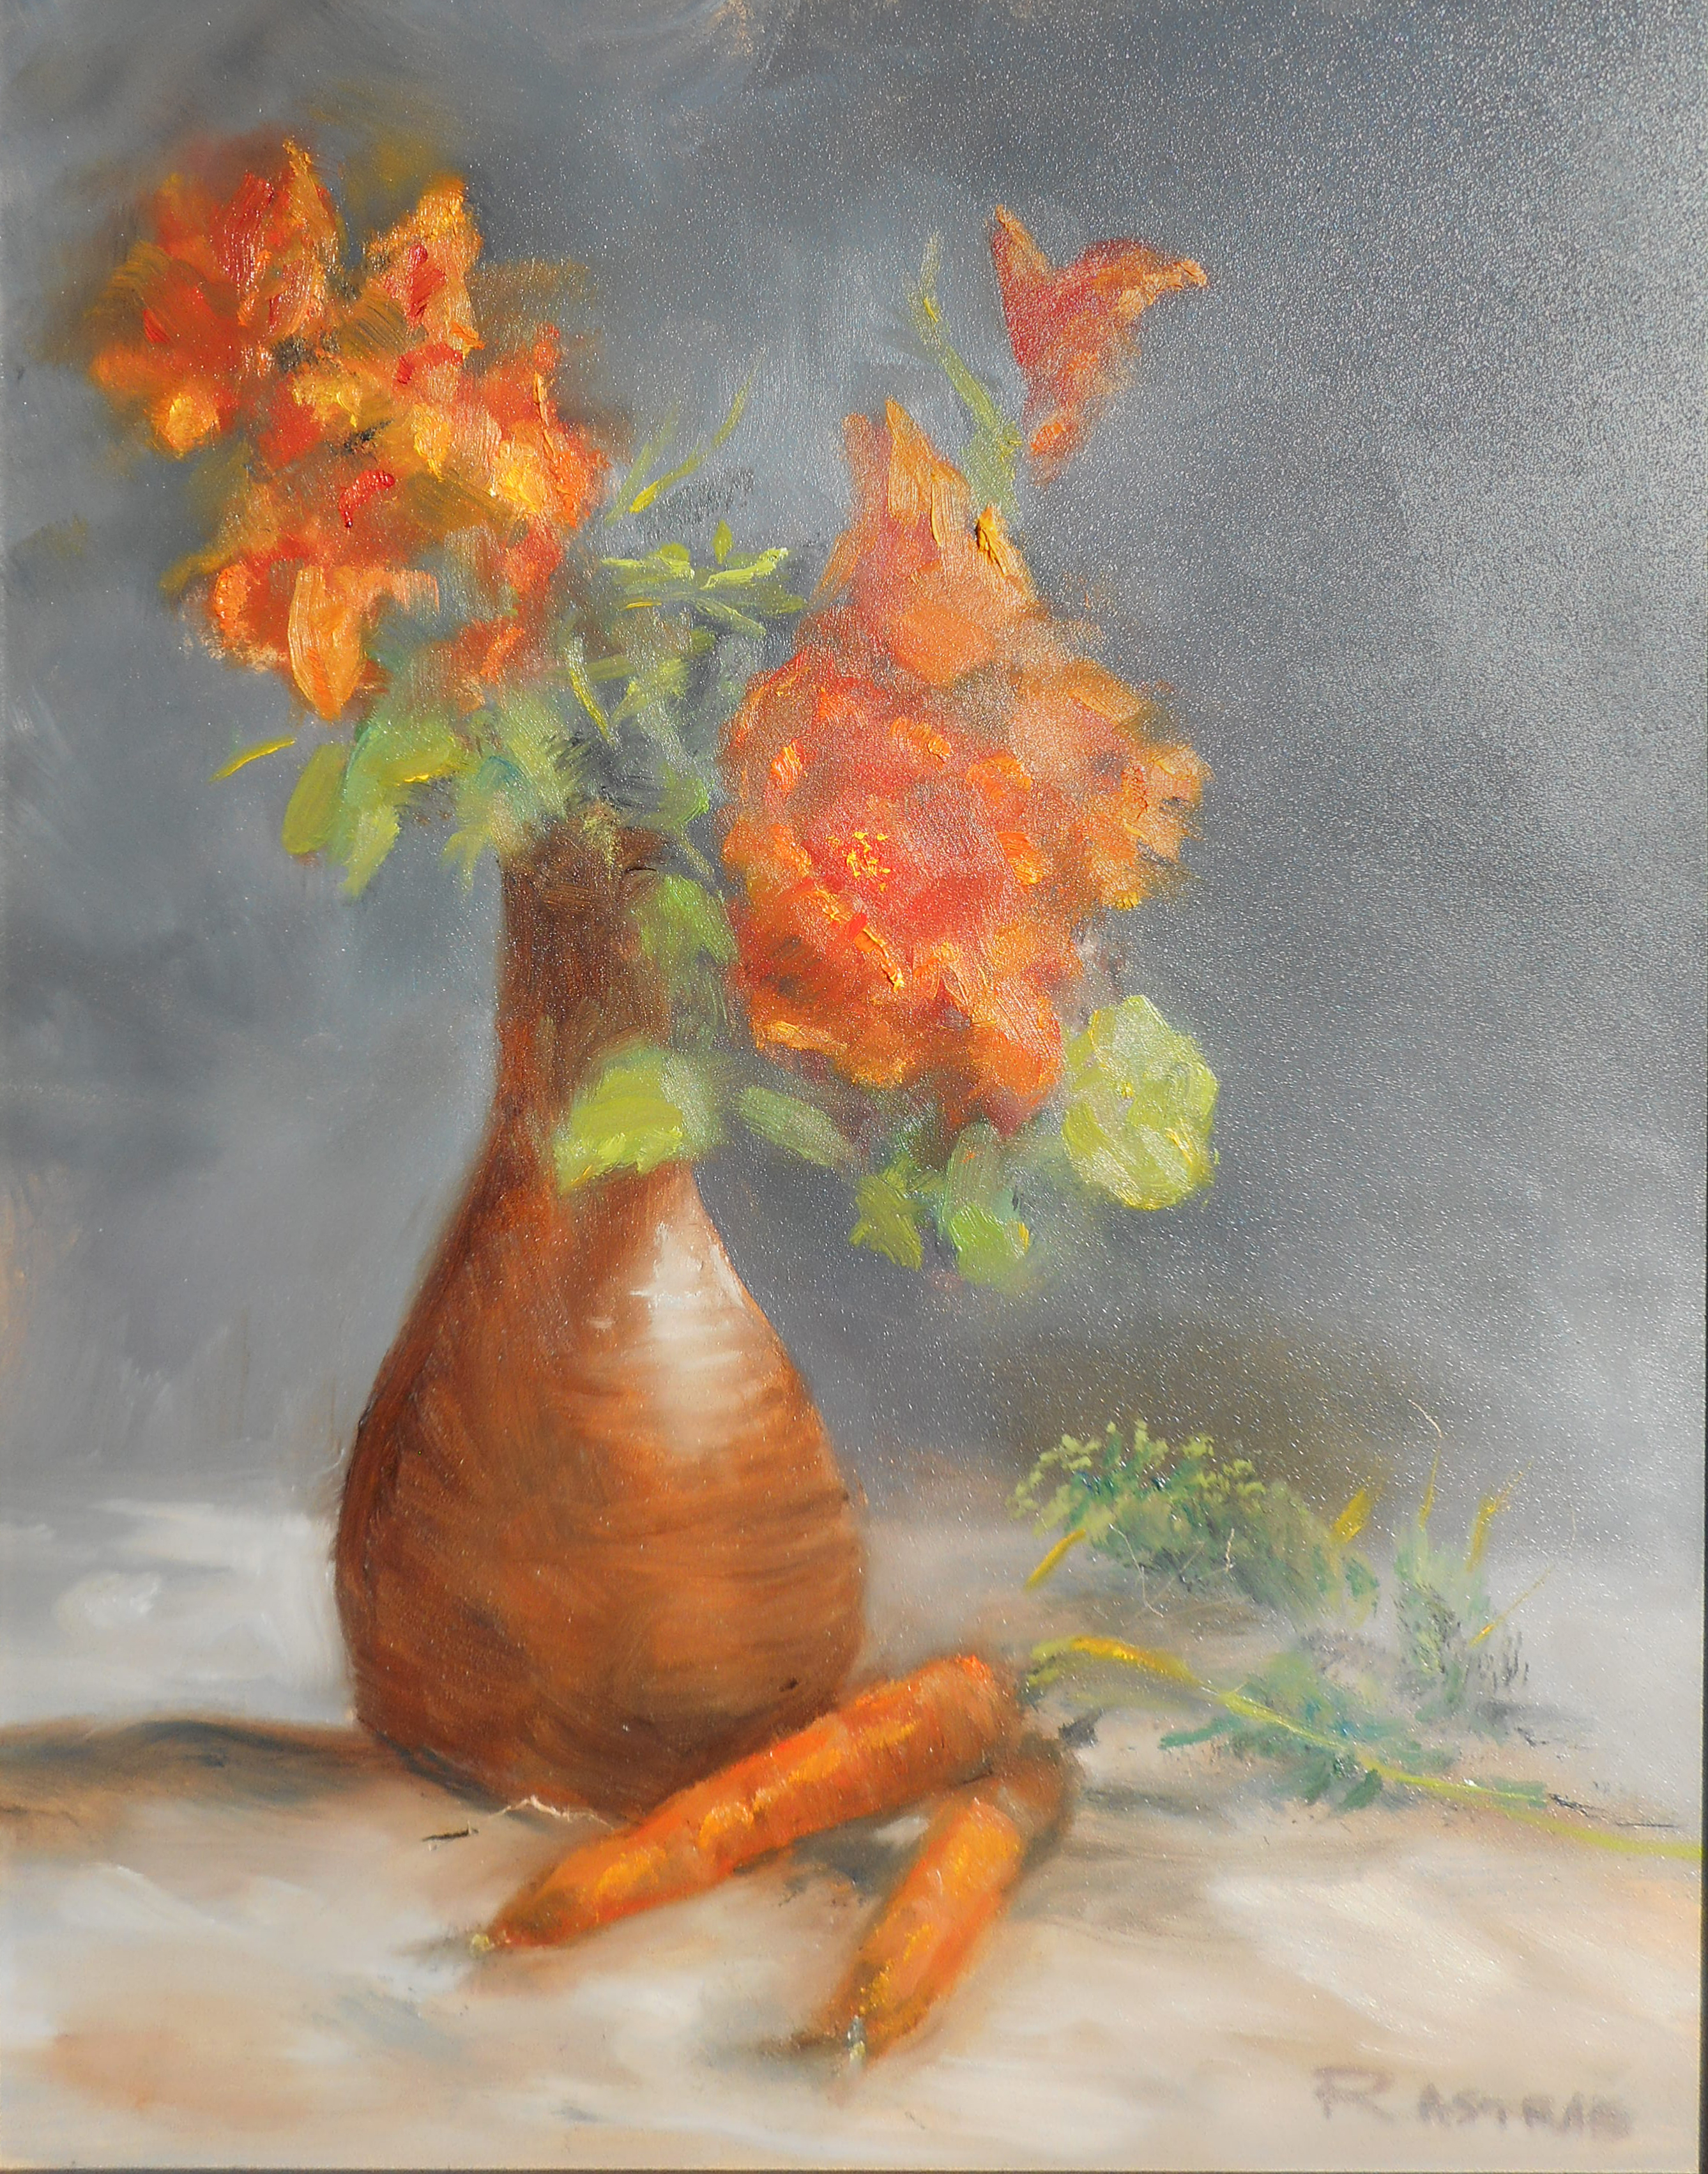 ASTRAB Still Life with Carrots 11x14